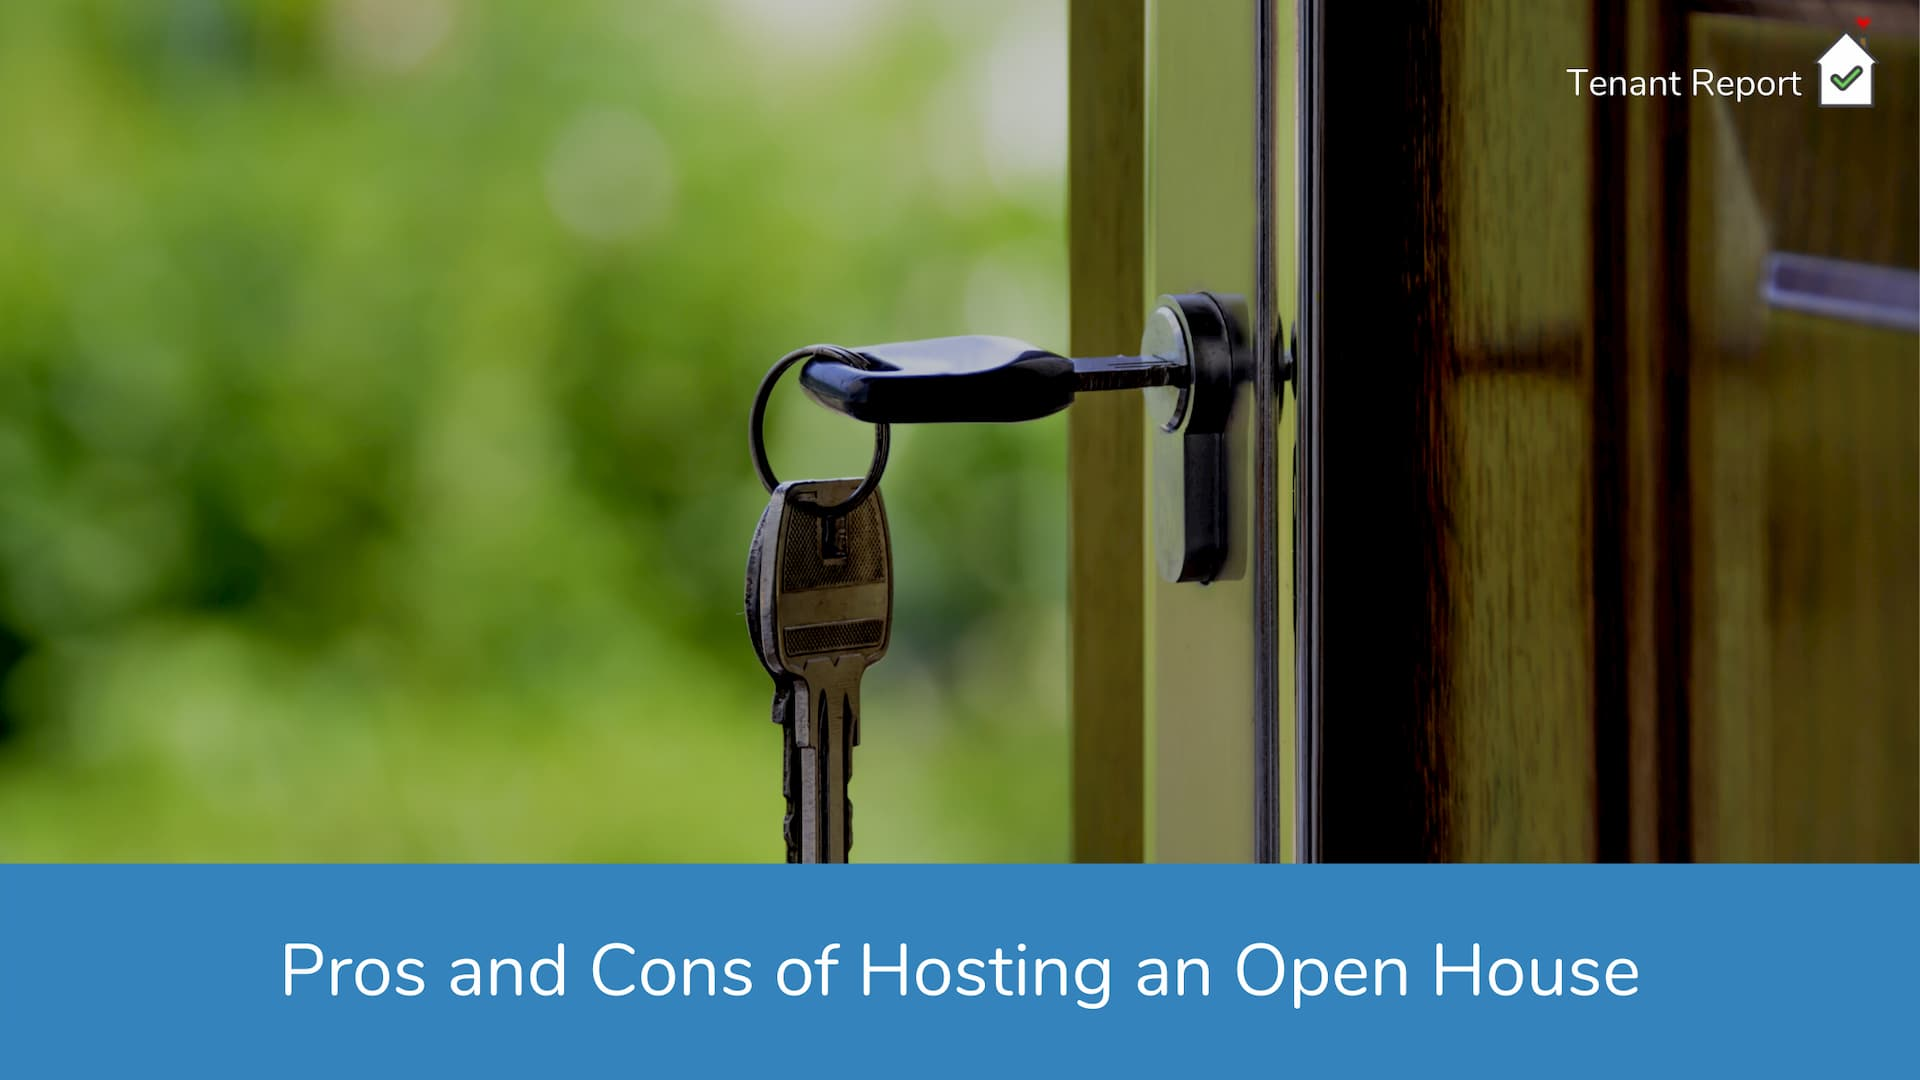 tenant-report-open-house-pros-and-cons